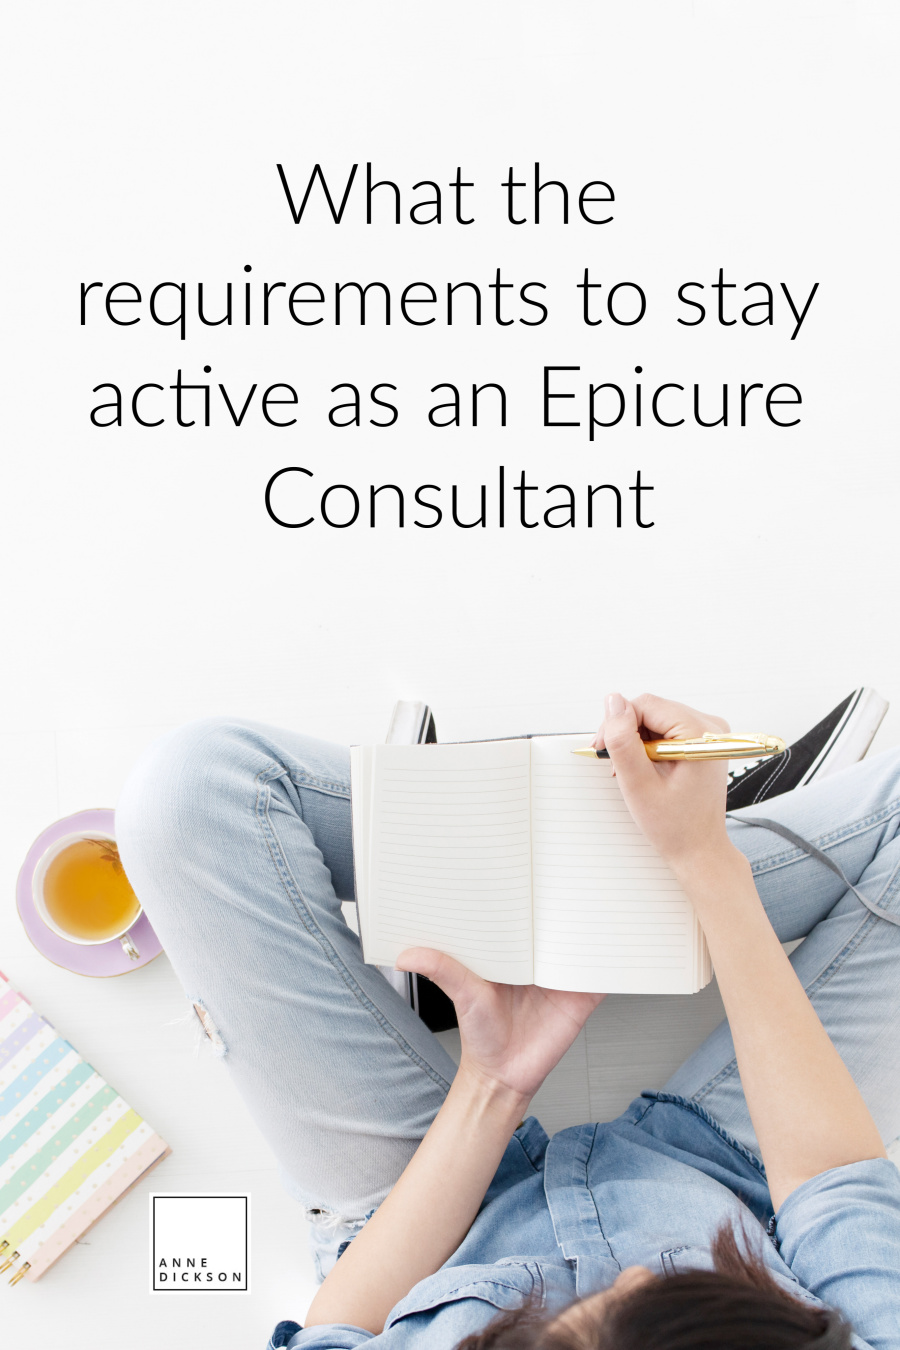 What the requirements to stay active as an Epicure Consultant?